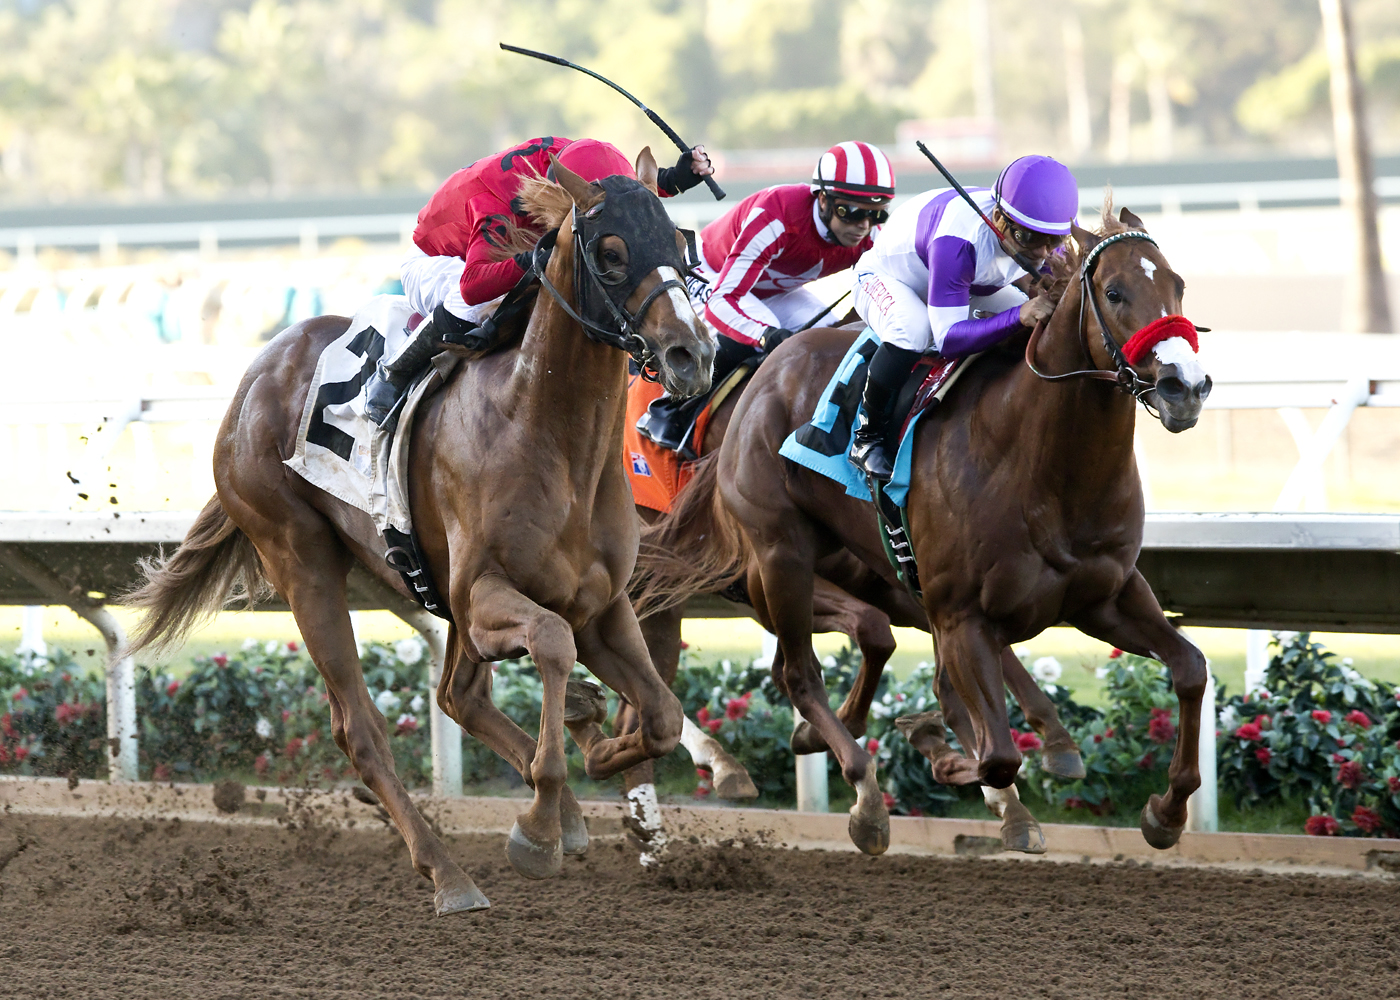 Irvin Racing Stable's Smokey Image and jockey Juan Hernandez, left, collar Found Money and Corey Nakatani, right, to win the $200,000 Golden State Juvenile horse race Friday, Oct. 30, 2015, at the Del Mar Thoroughbred Club in Del Mar, Calif. (Benoit Photo